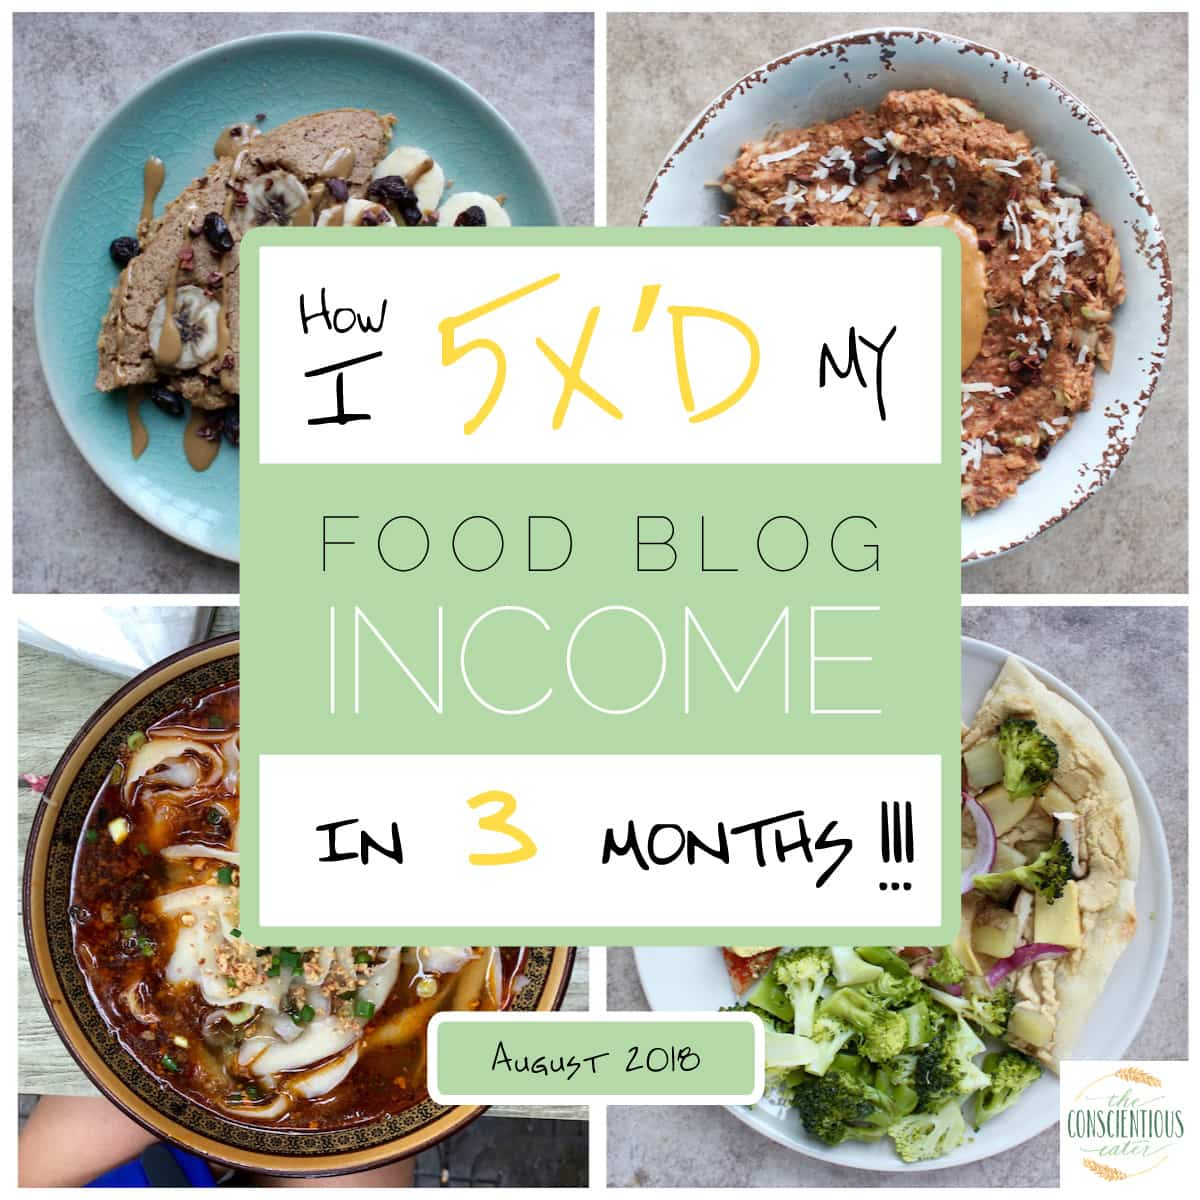 How I increased my food blog's income